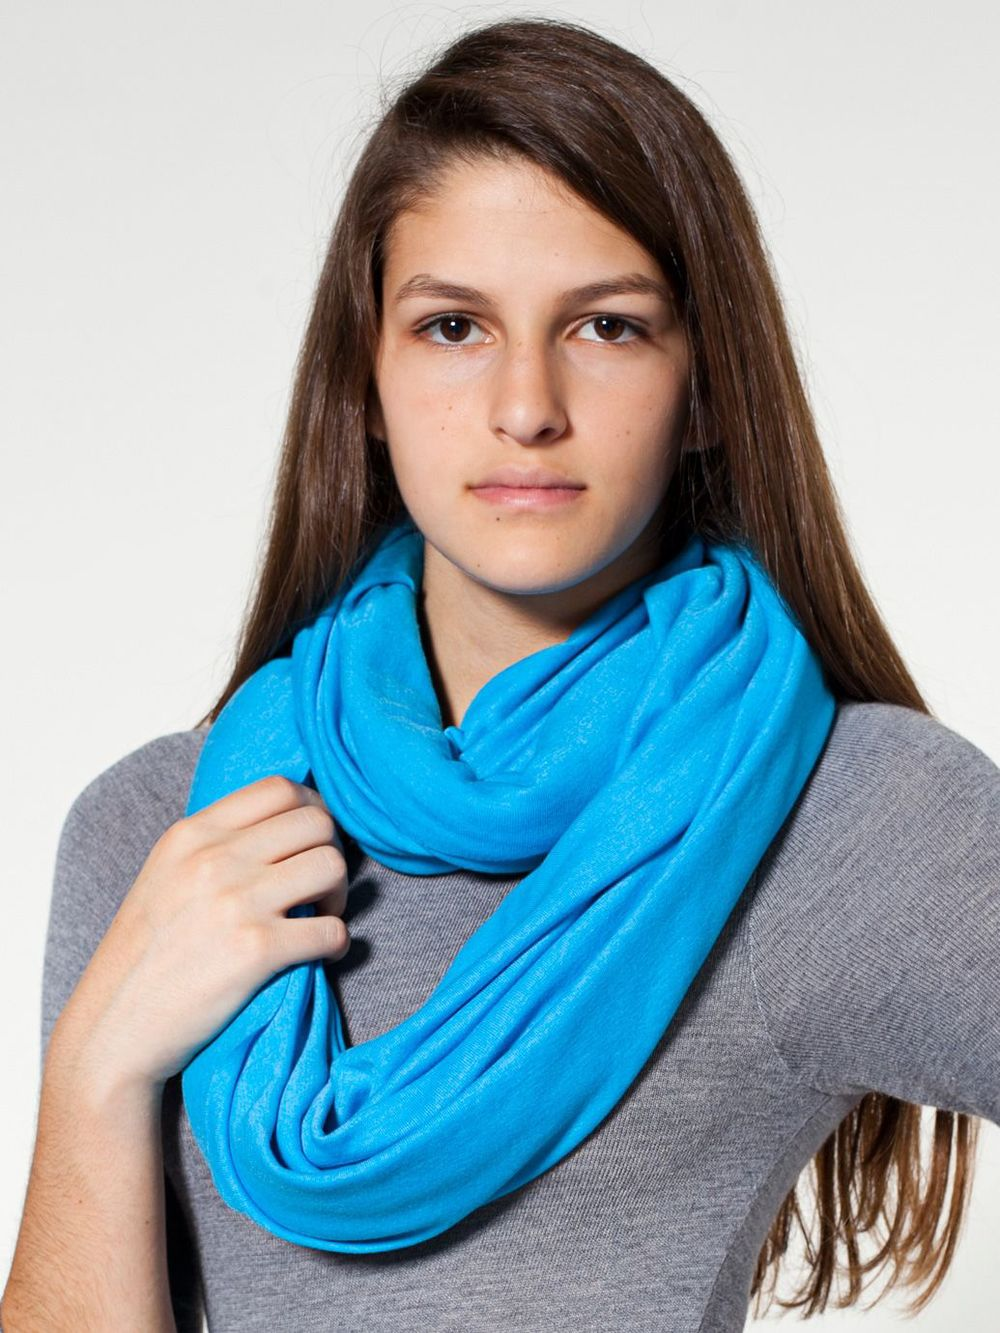 The Unisex Circle scarf. Available in endless colors. American Apparel. Was: $28 Now: $14.